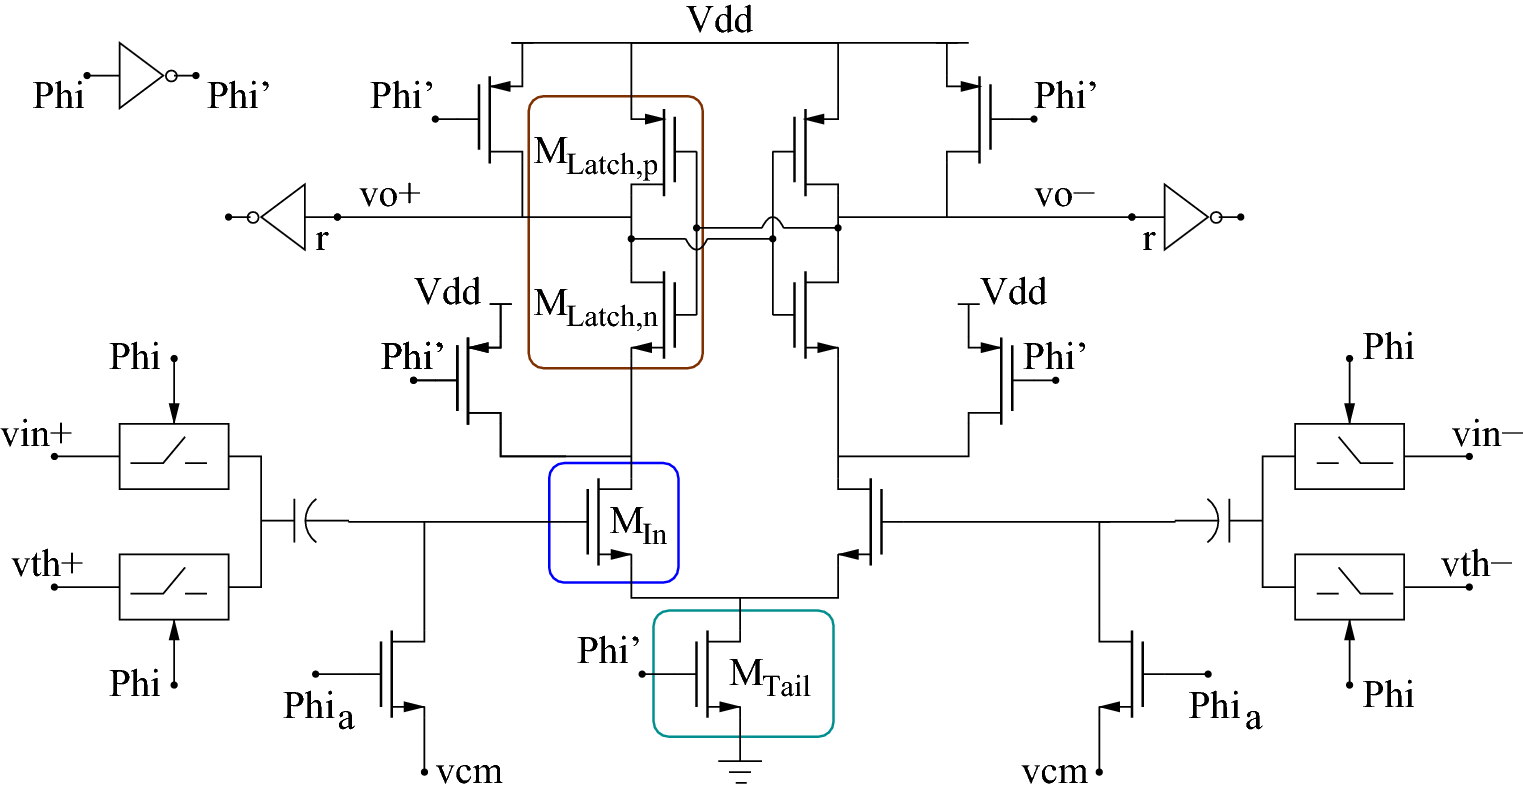 Modeling and sizing of non-linear CMOS analog circuits used